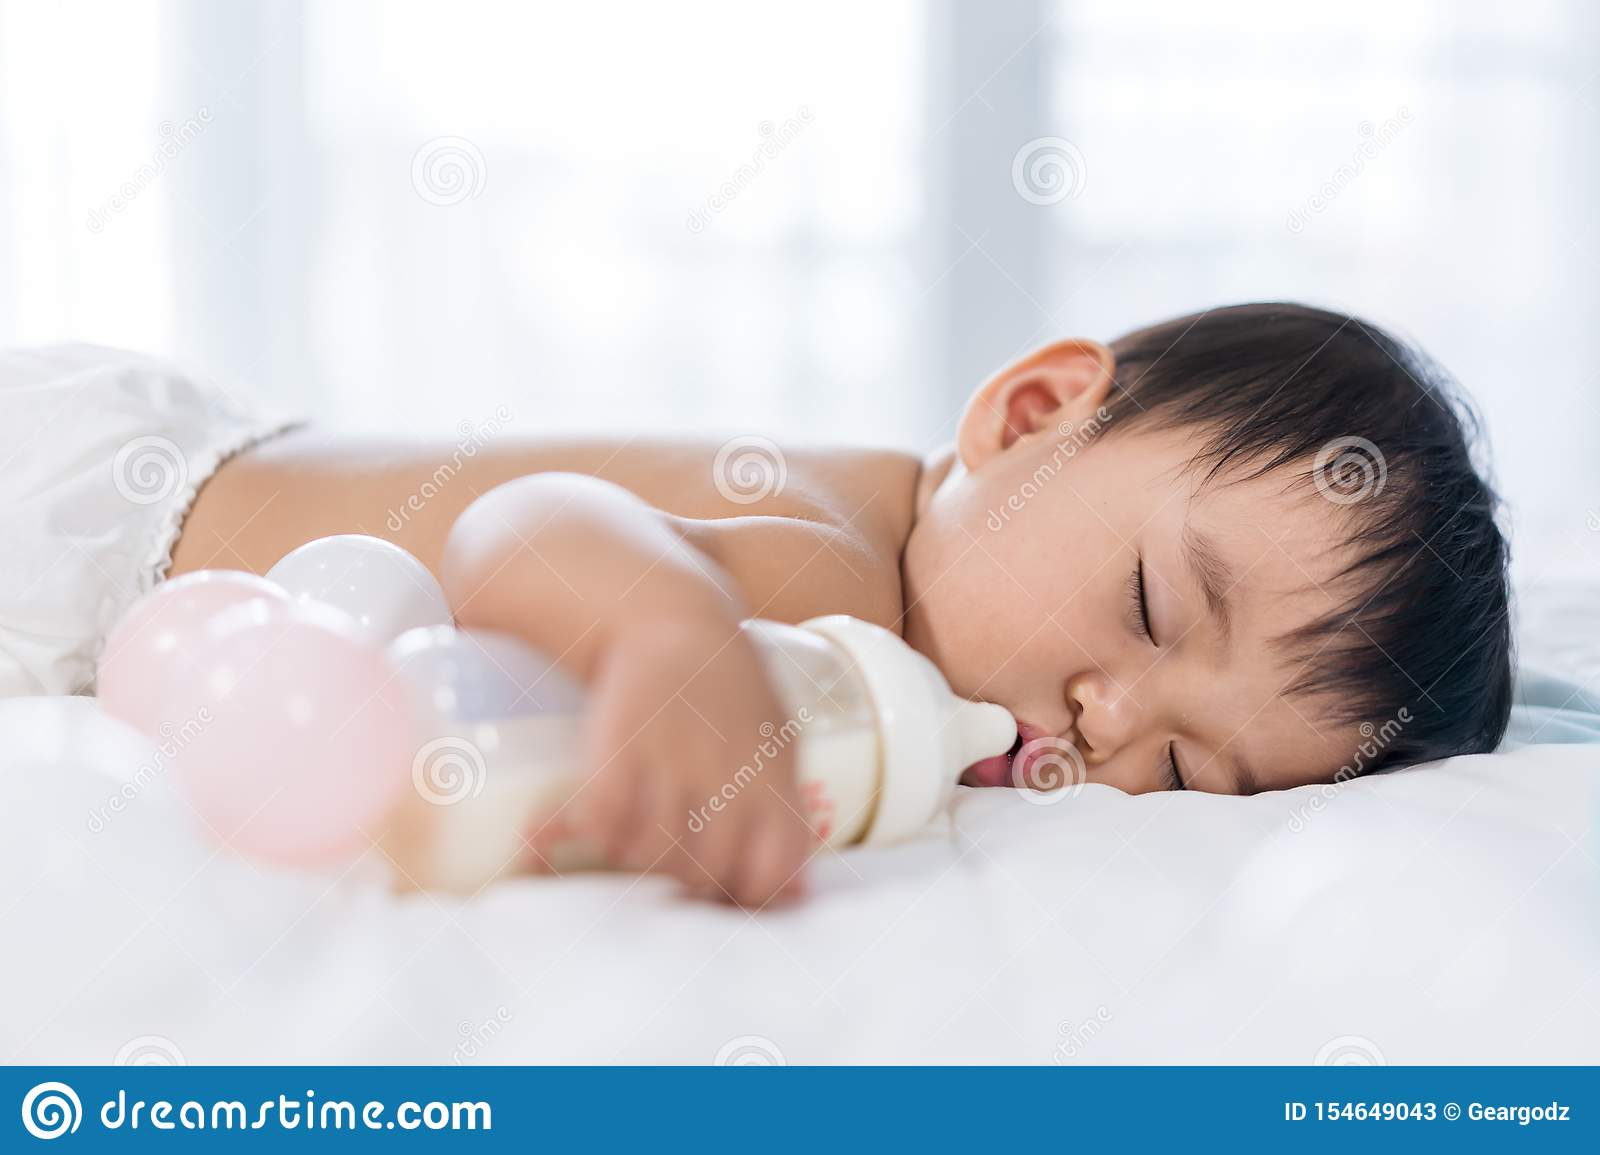 Baby Sleeping On Bed After Drinking Bottle Milk Stock Image